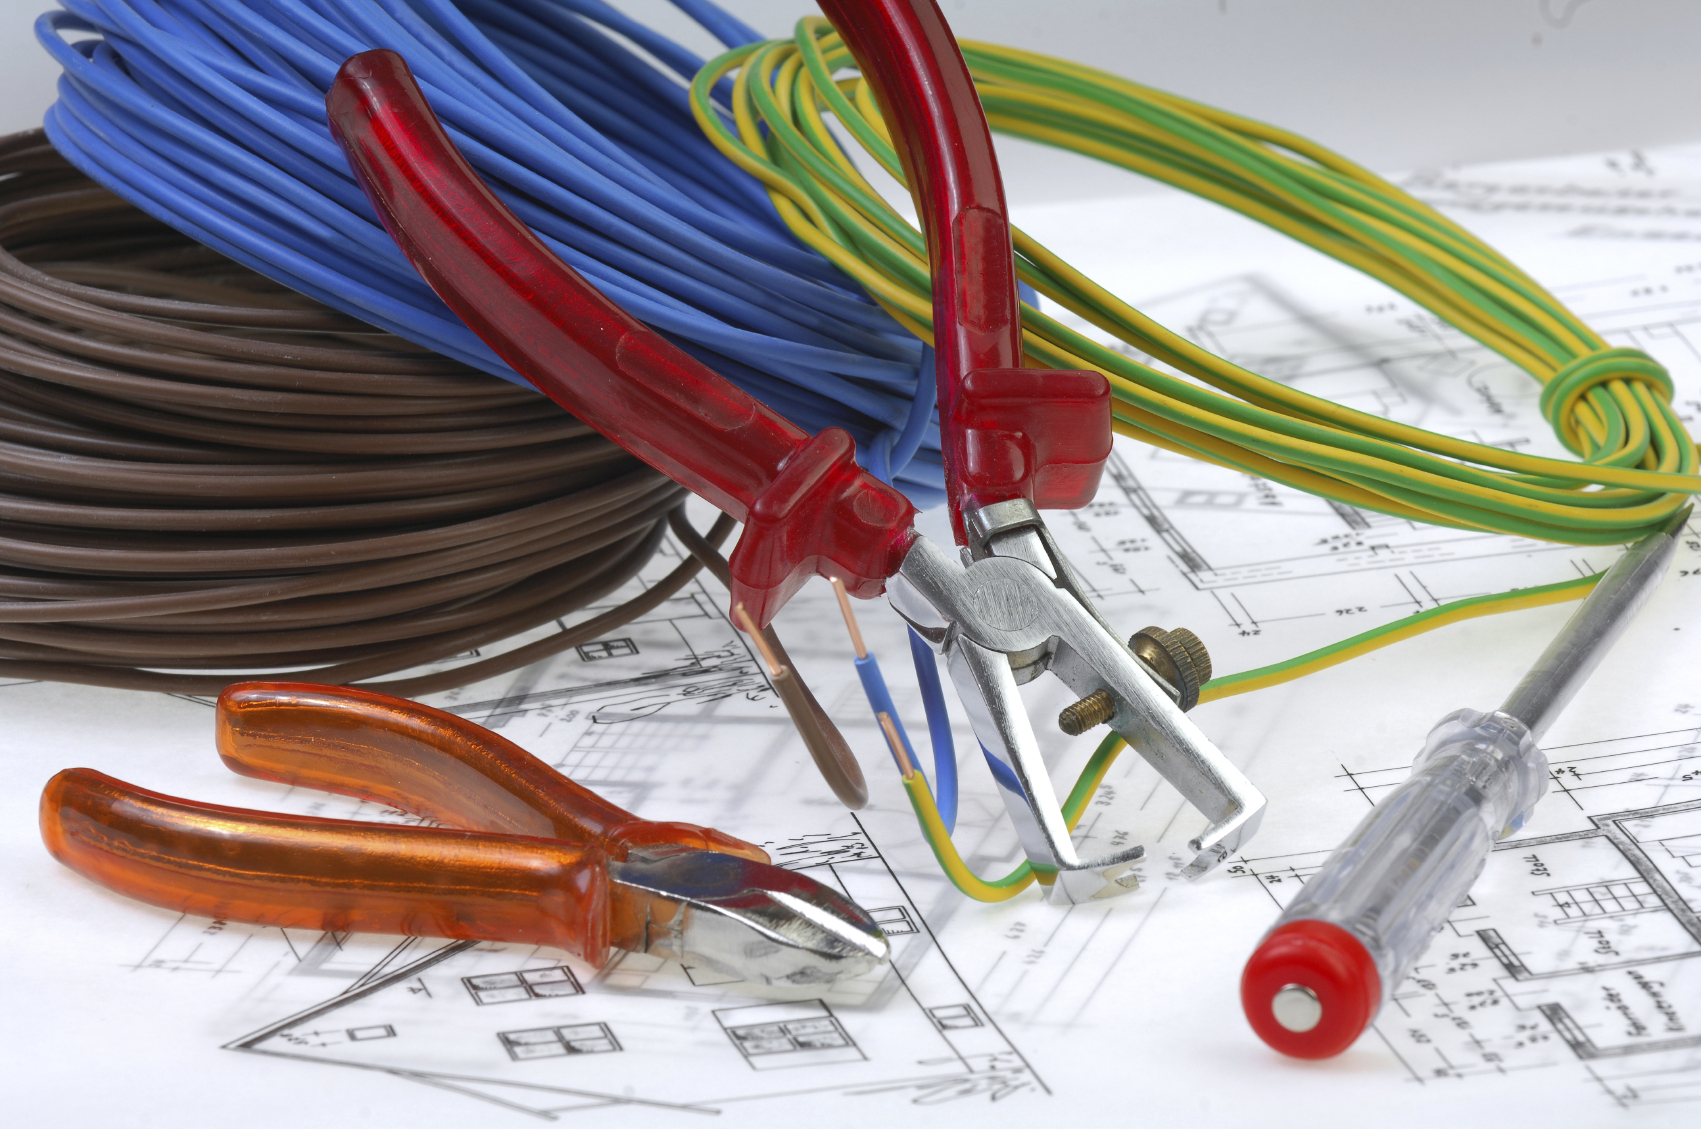 House Electrical Wiring Diagram In India Electrician Bodmin Liskeard Lostwithiel Cornwall Electrics Domestic